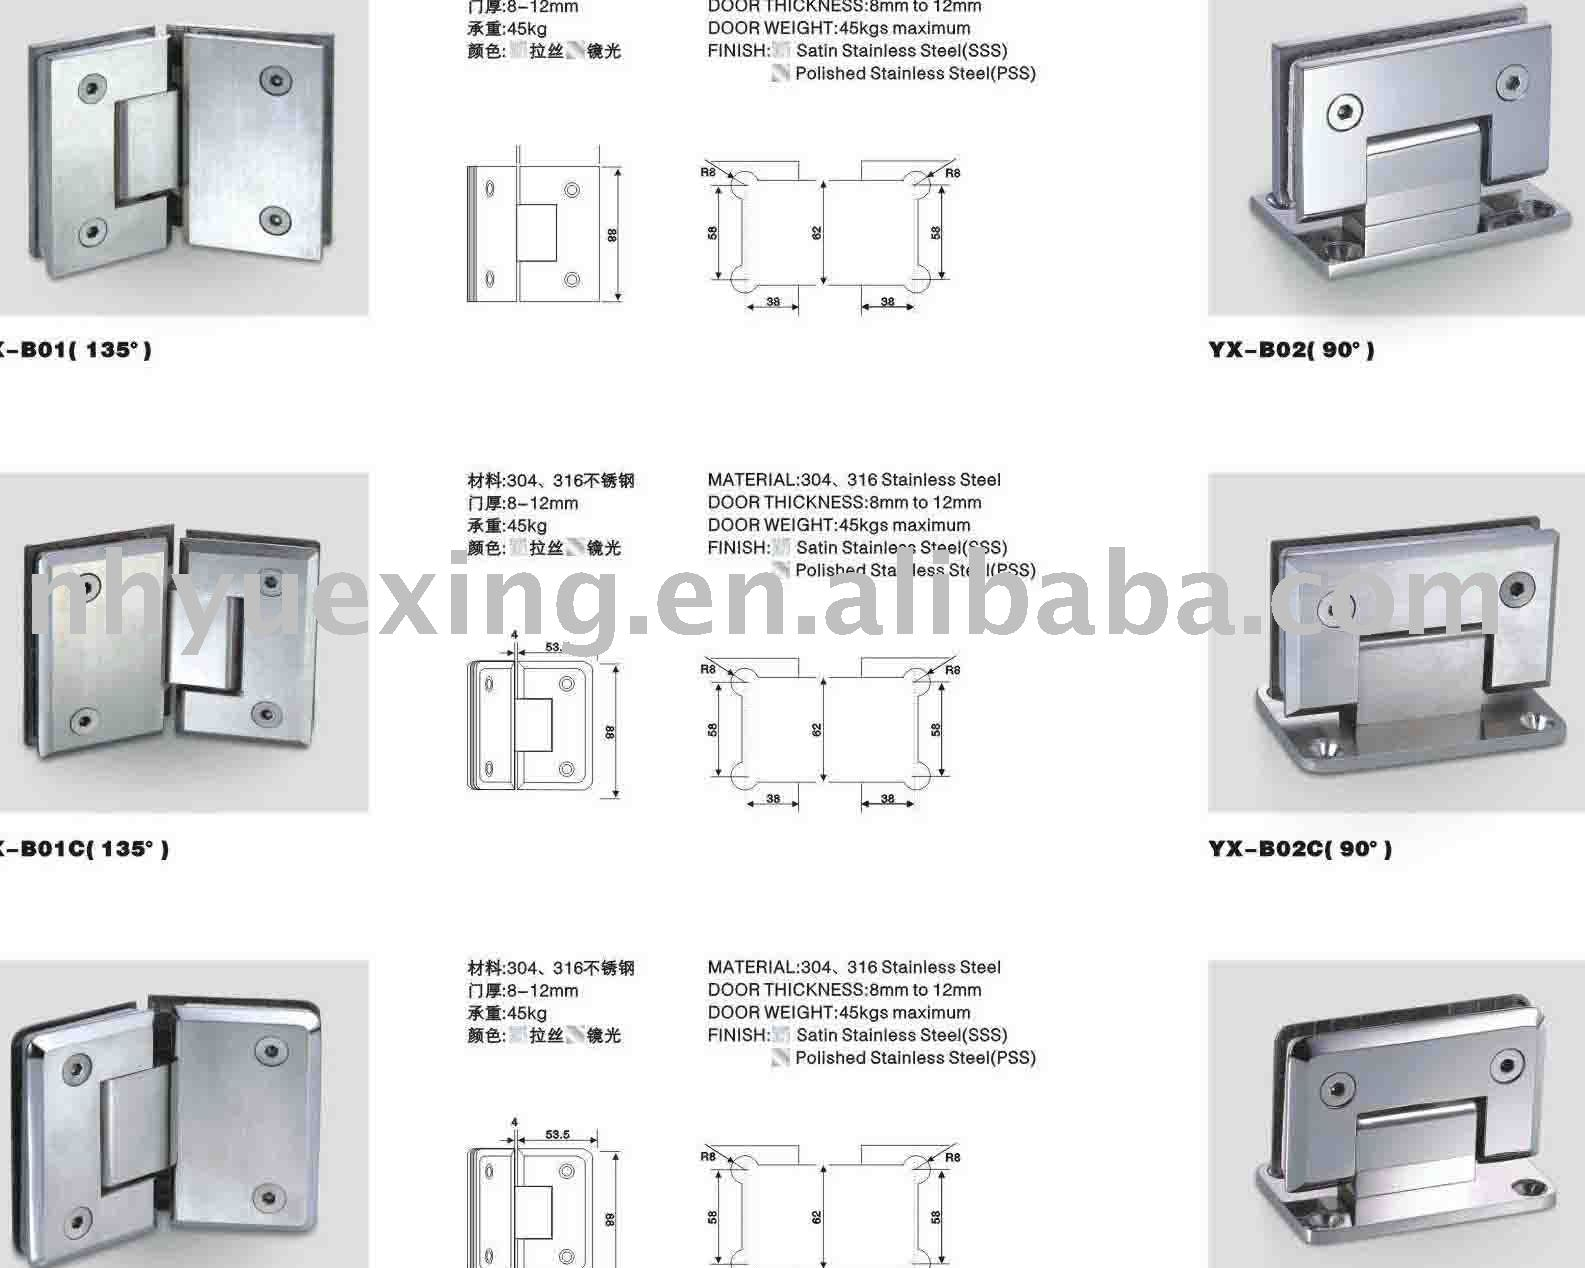 Glass to glass door hinges - Stainless Steel Glass Door Hinges Buy Glass Door Hinge Glass Door Hinge Yx B Shower Door Hinge Product On Alibaba Com